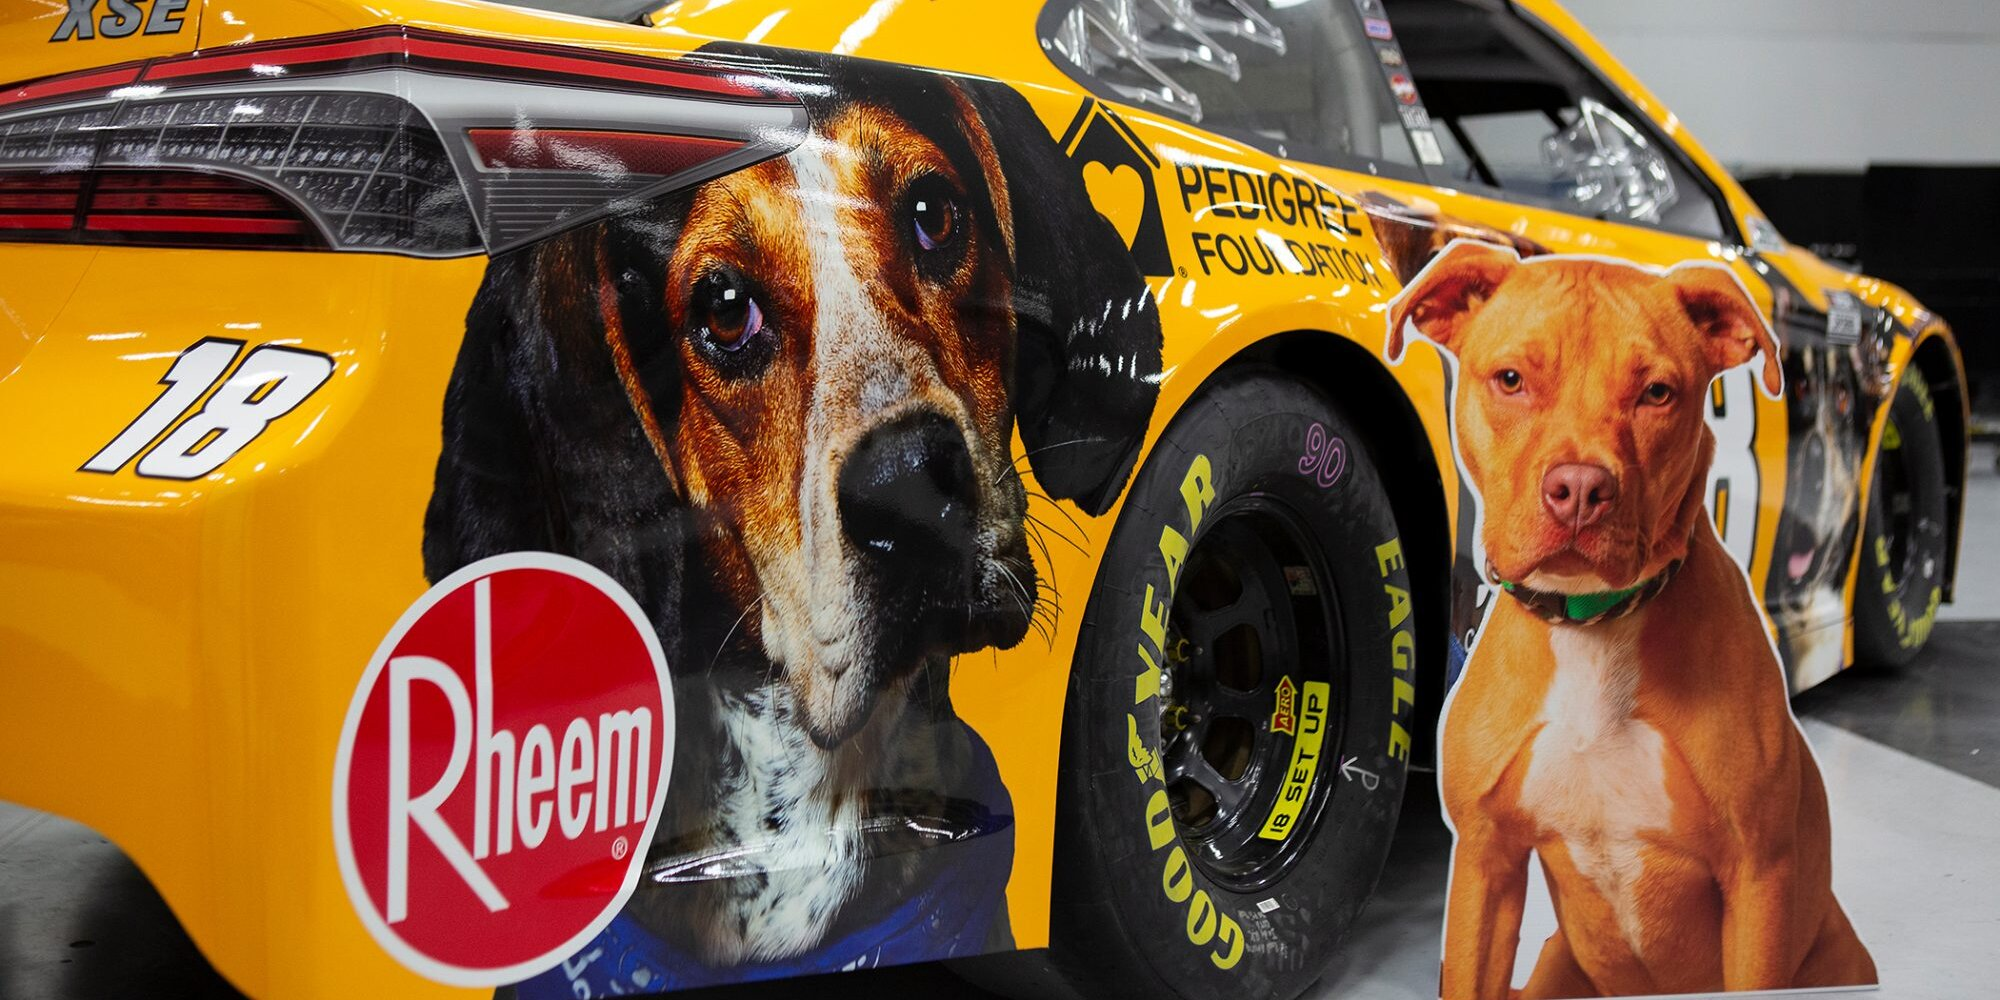 NASCAR Champion Kyle Busch Helps Adorable Dogs Find Their Forever Homes in the Coolest Way